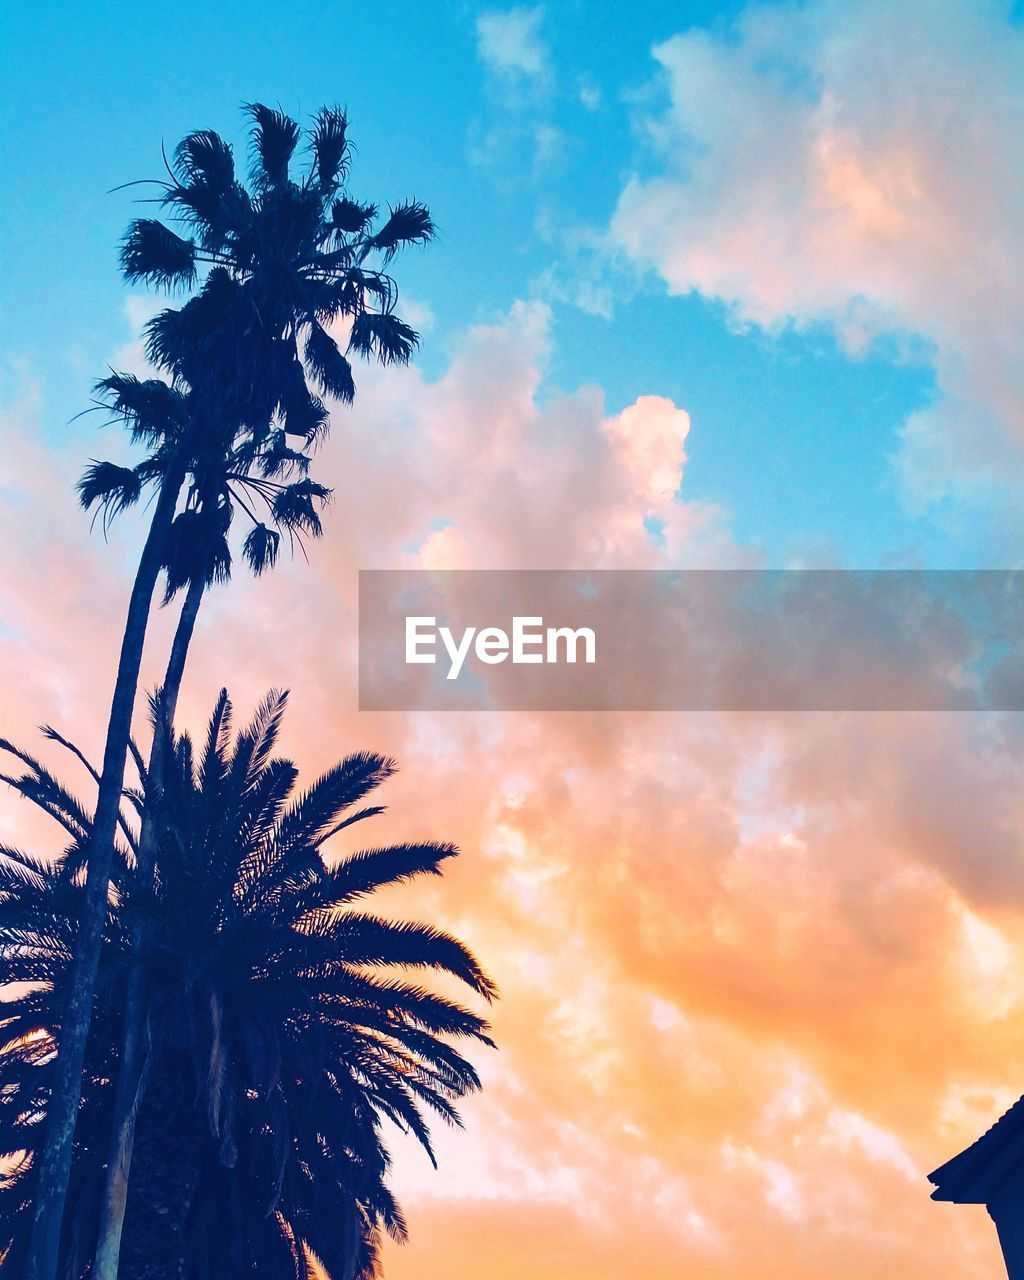 palm tree, tree, sky, low angle view, sunset, silhouette, cloud - sky, beauty in nature, outdoors, tree trunk, no people, scenics, nature, tranquil scene, tranquility, growth, day